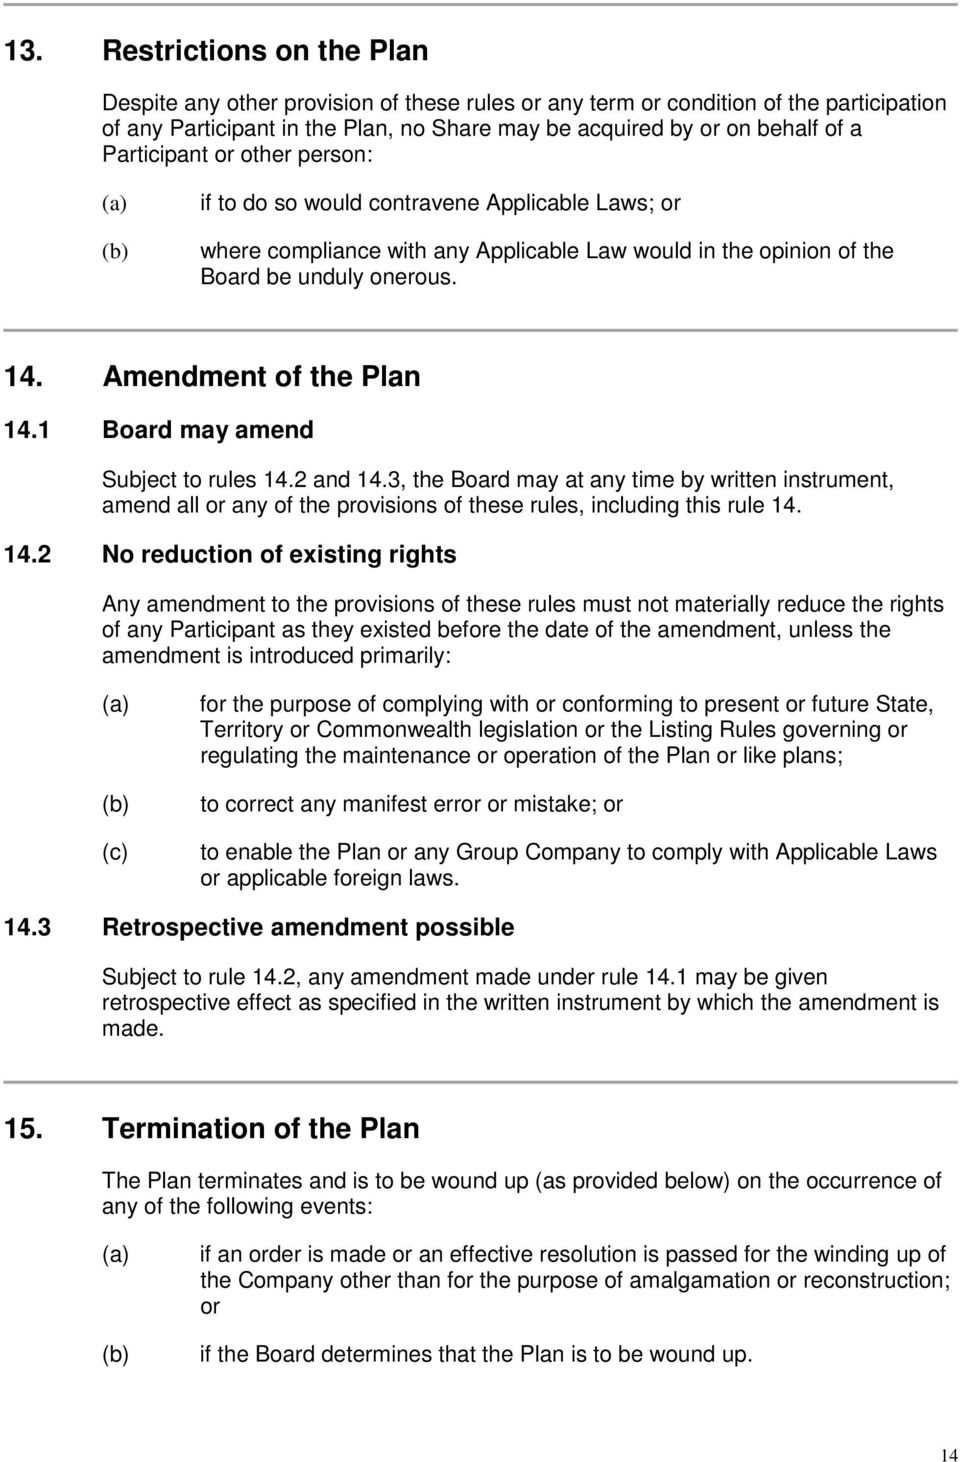 Amendment of the Plan 14.1 Board may amend Subject to rules 14.2 and 14.3, the Board may at any time by written instrument, amend all or any of the provisions of these rules, including this rule 14.